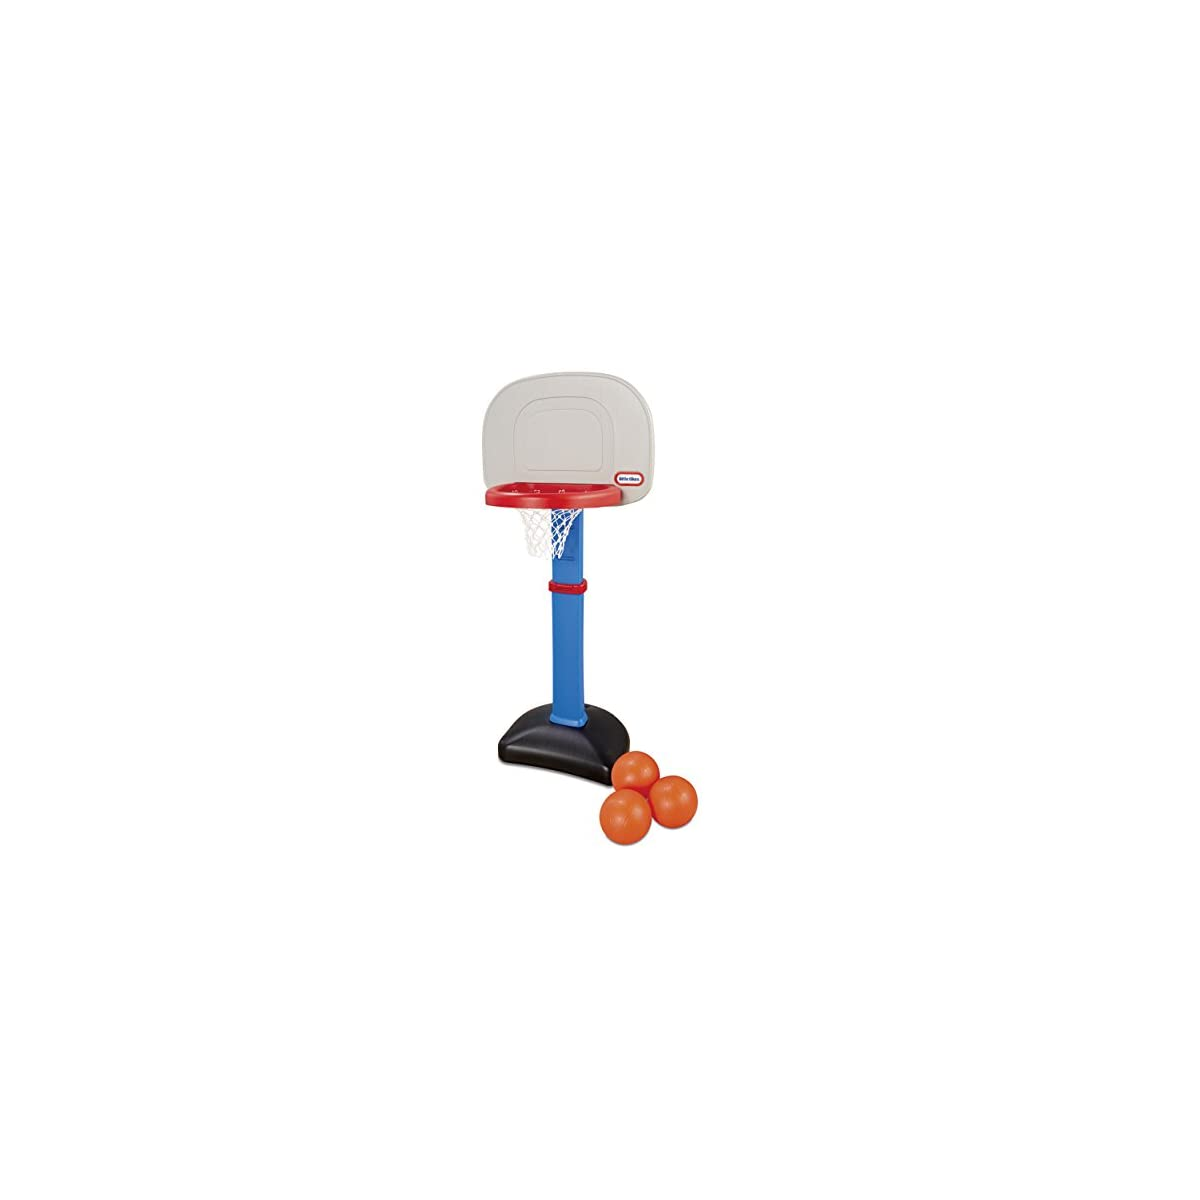 SaleProductsOffer - No.1 Best Online Store 31yRCHsN8uL Little Tikes EasyScore Basketball Set (Amazon Exclusive)